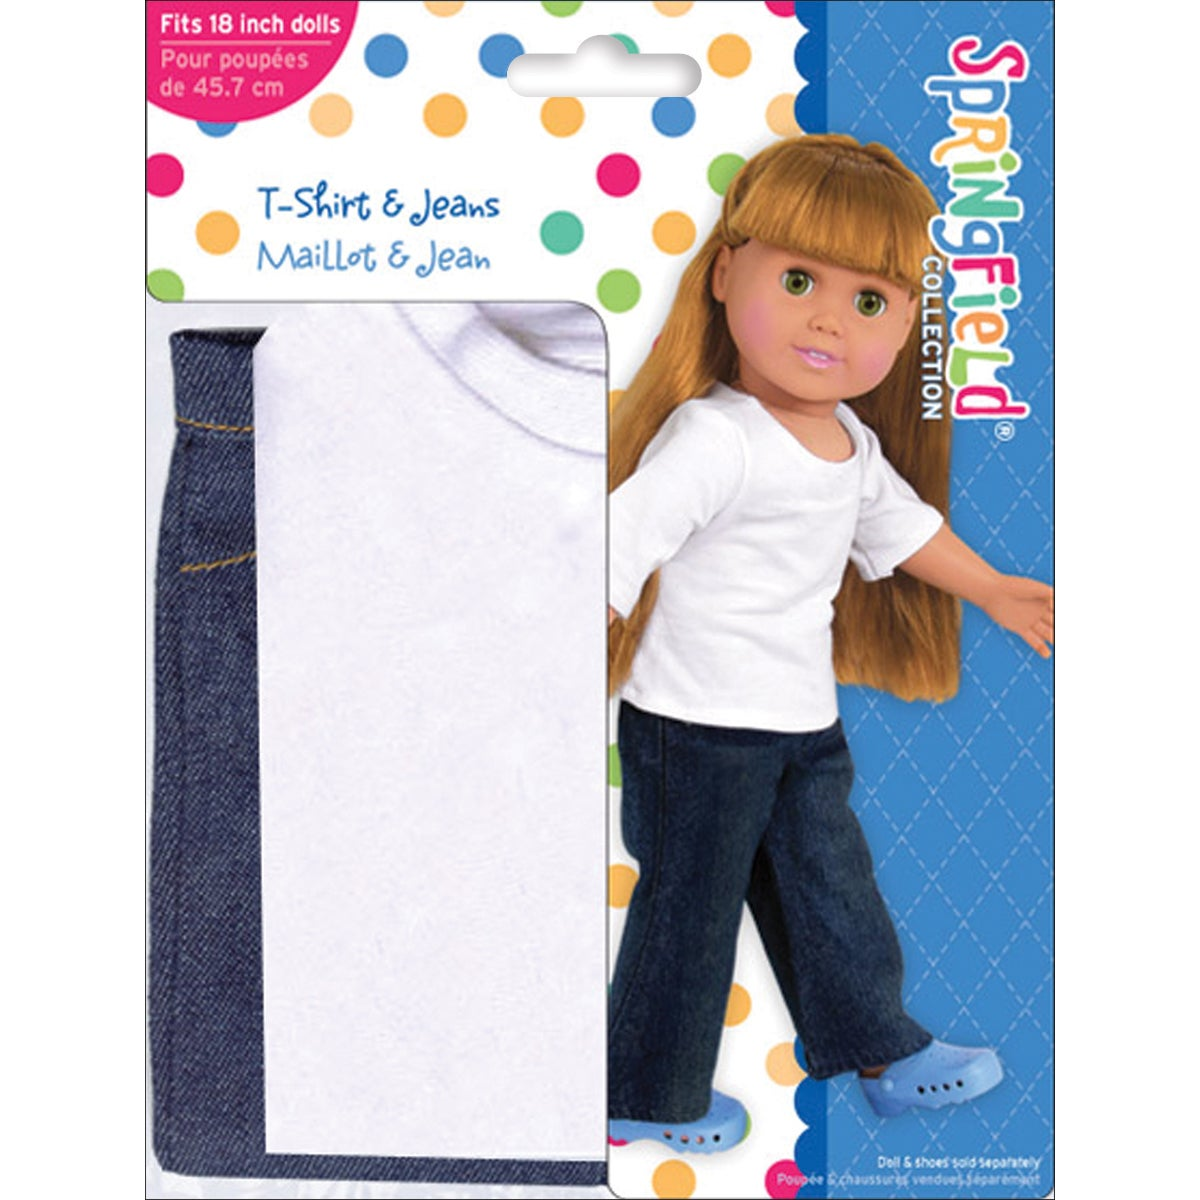 for 18 inch Doll Fiber Craft Springfield Collection Sleepover Doll Clothes Set